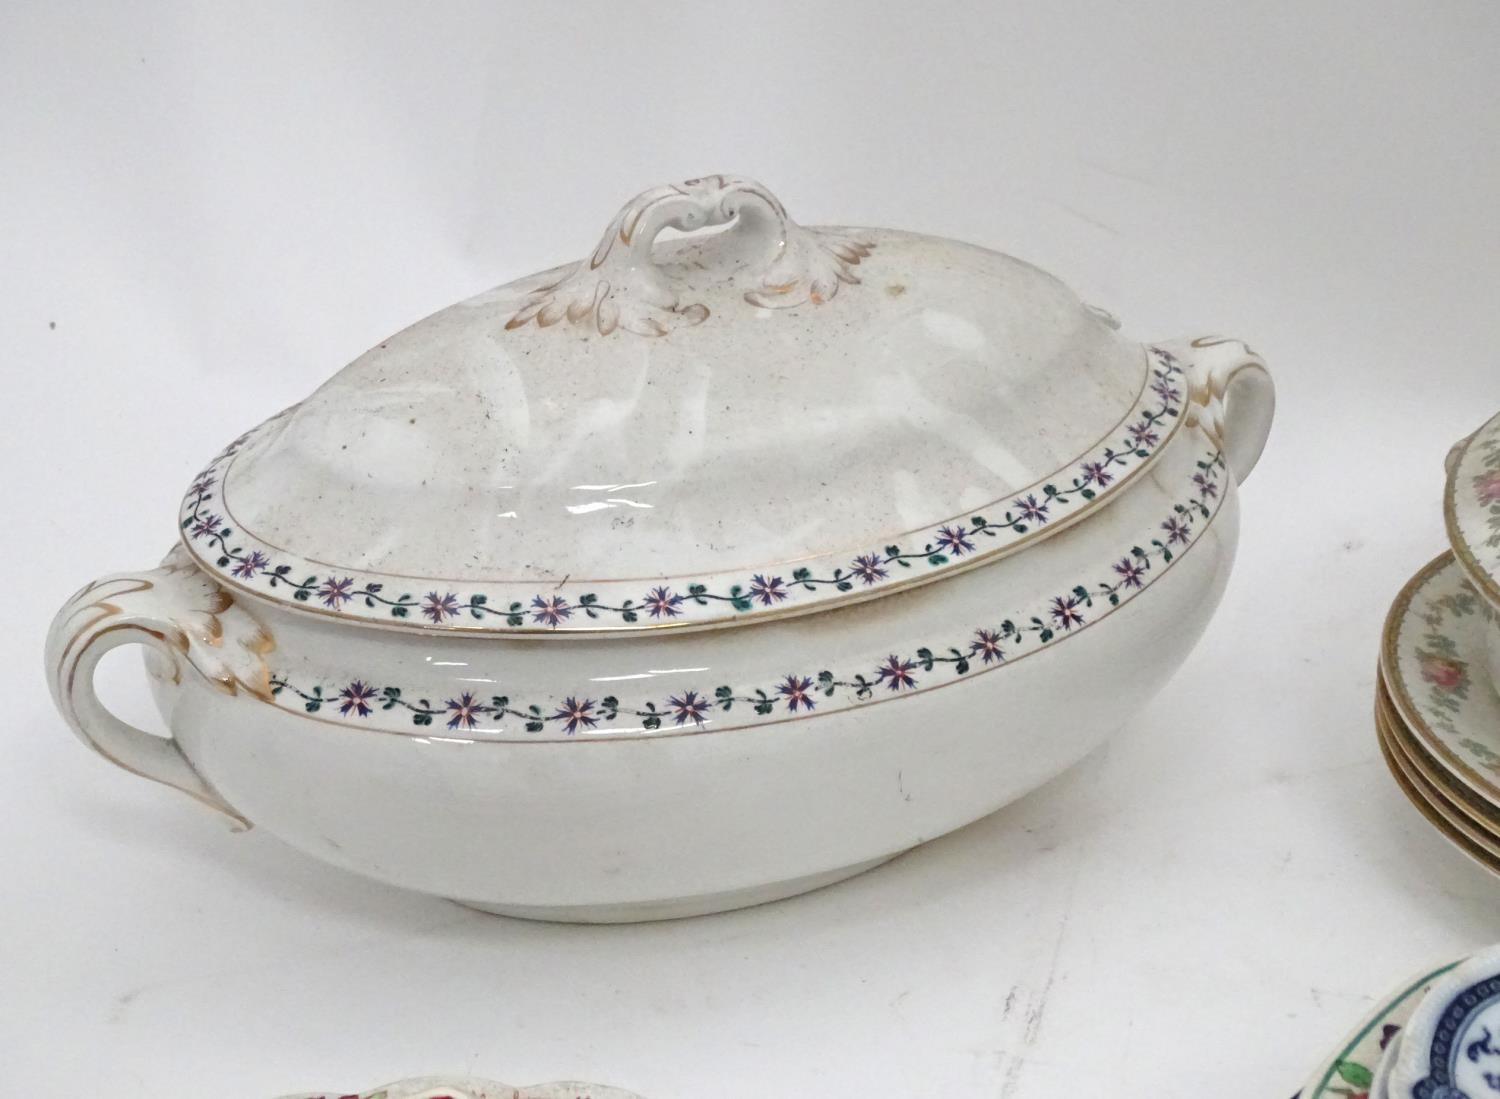 A quantity of assorted Booths china patterns to include Old Staffordshire, Flowerpiece, - Image 8 of 14